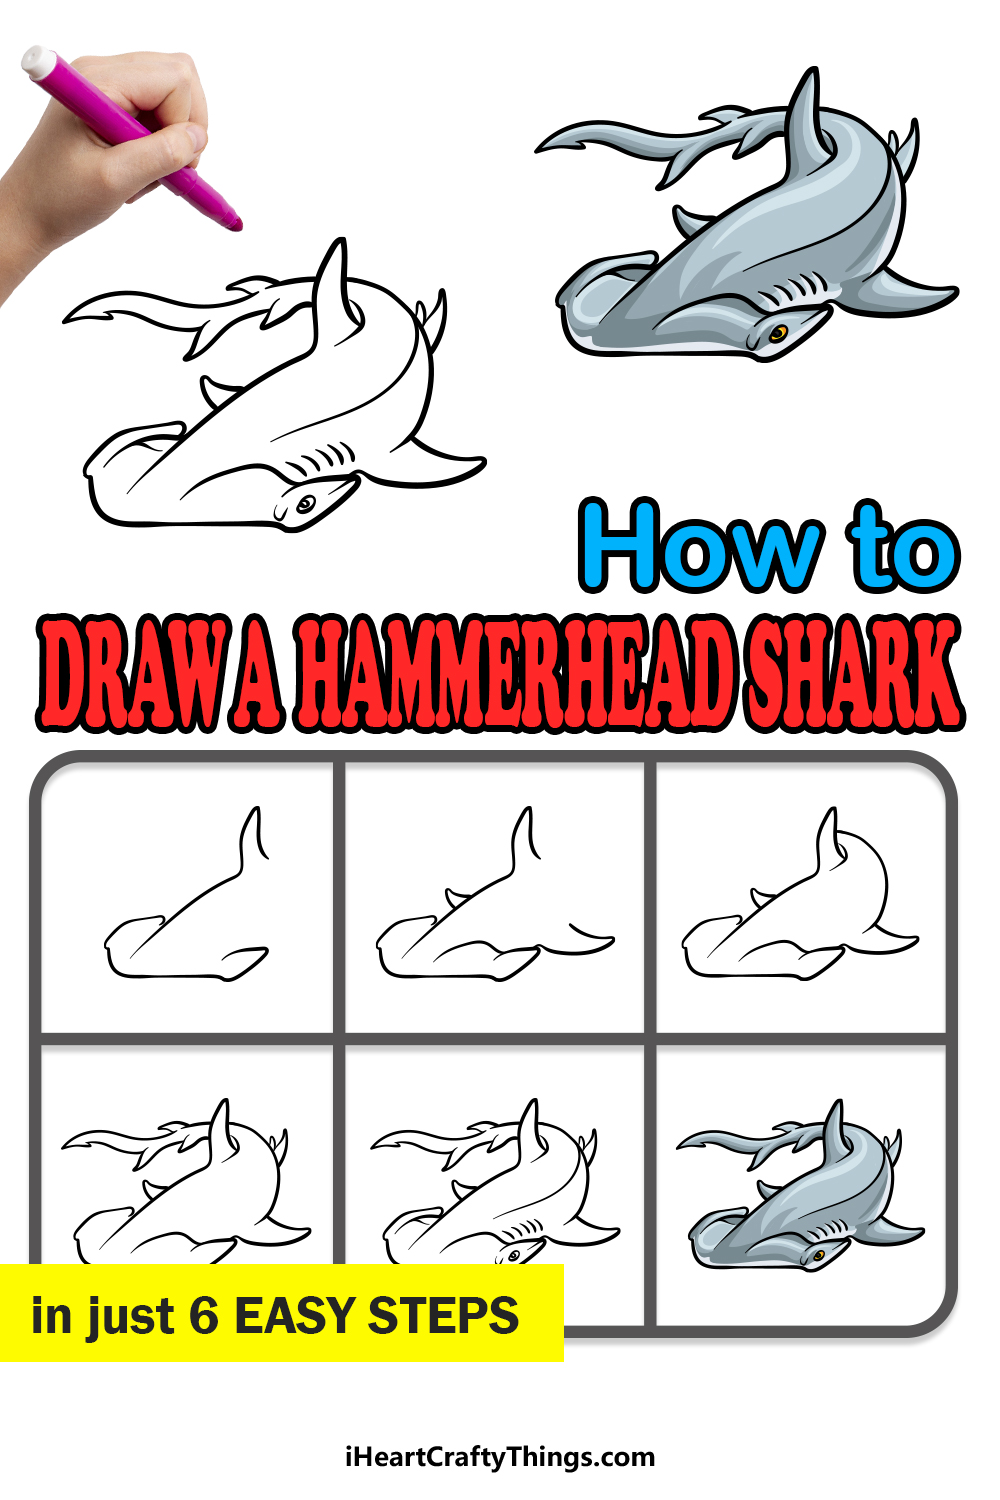 how to draw a hummerhead shark in 6 easy steps